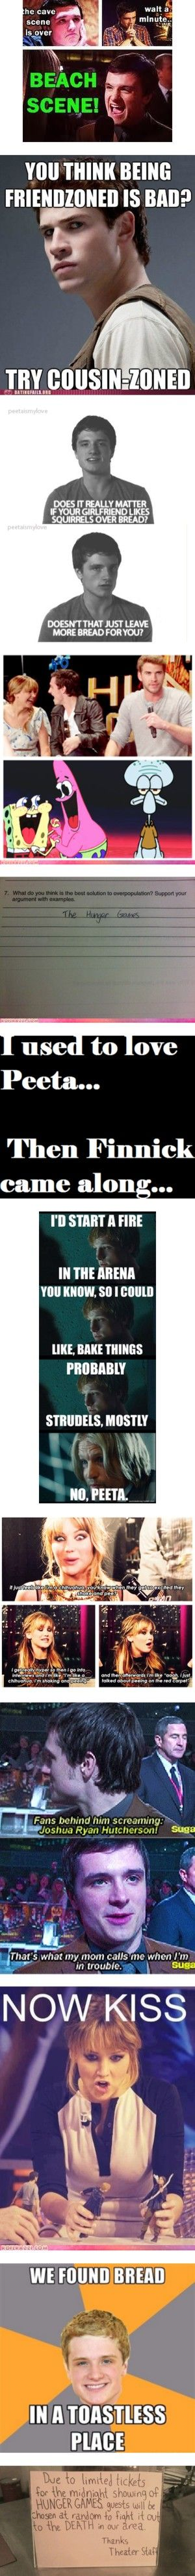 Why does everyone love Finnick? I really don't get it. Peeta FTW!!!<< NOPE FINNICK